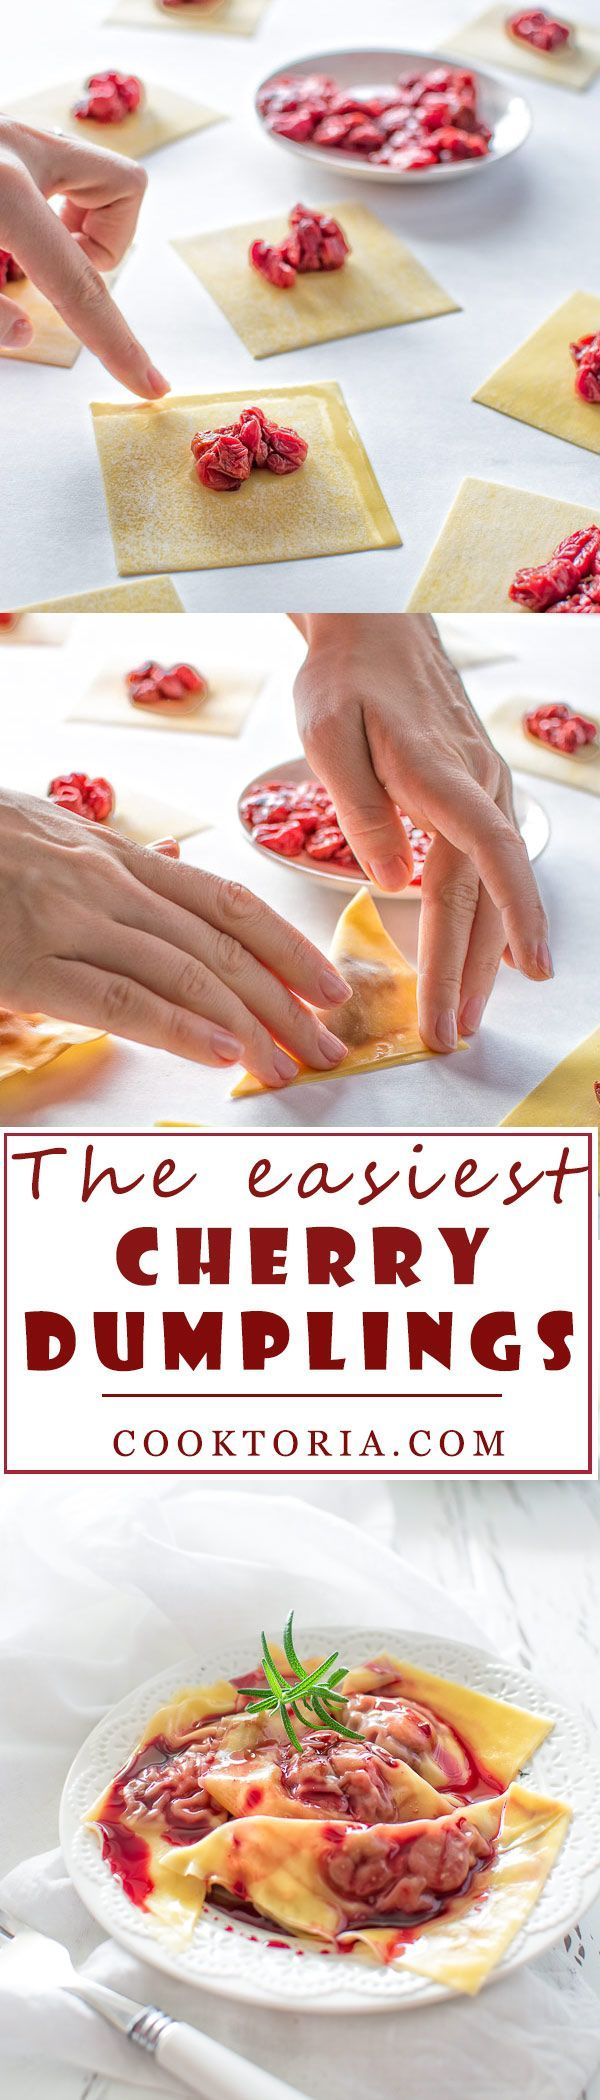 The easiest cherry dumplings made with wonton wrappers, frozen cherries and a special cherry sauce. ❤️ COOKTORIA.COM